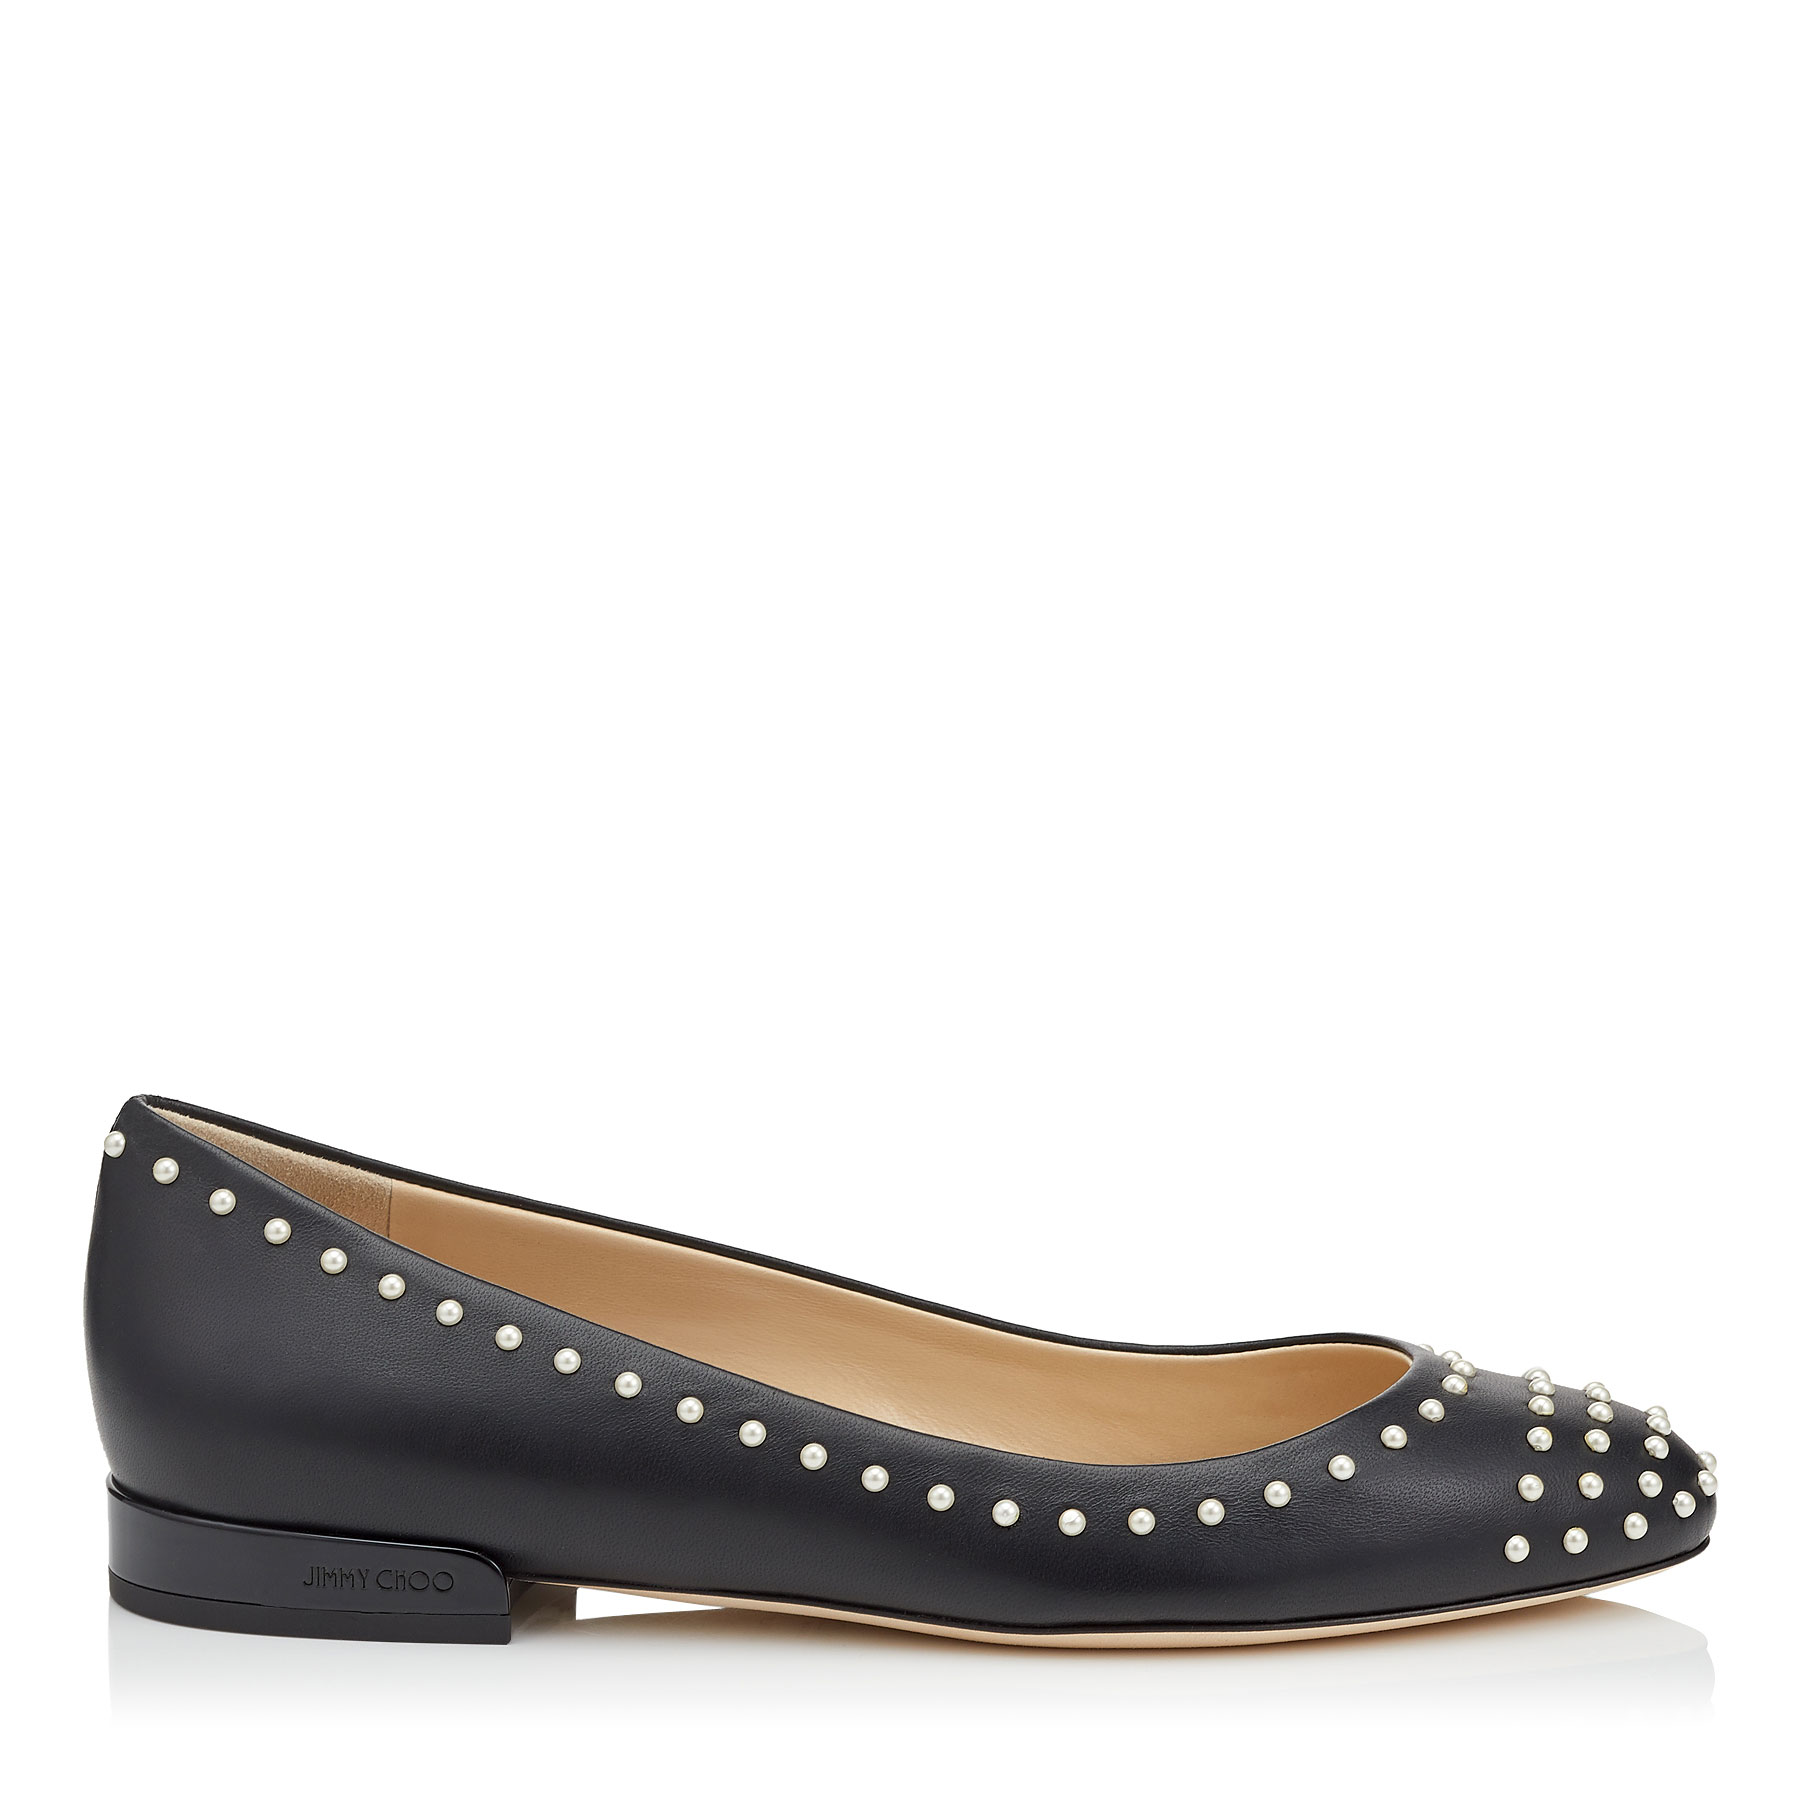 JESSIE FLAT Black Leather Round Toe Pumps with Pearl Detailing by Jimmy Choo